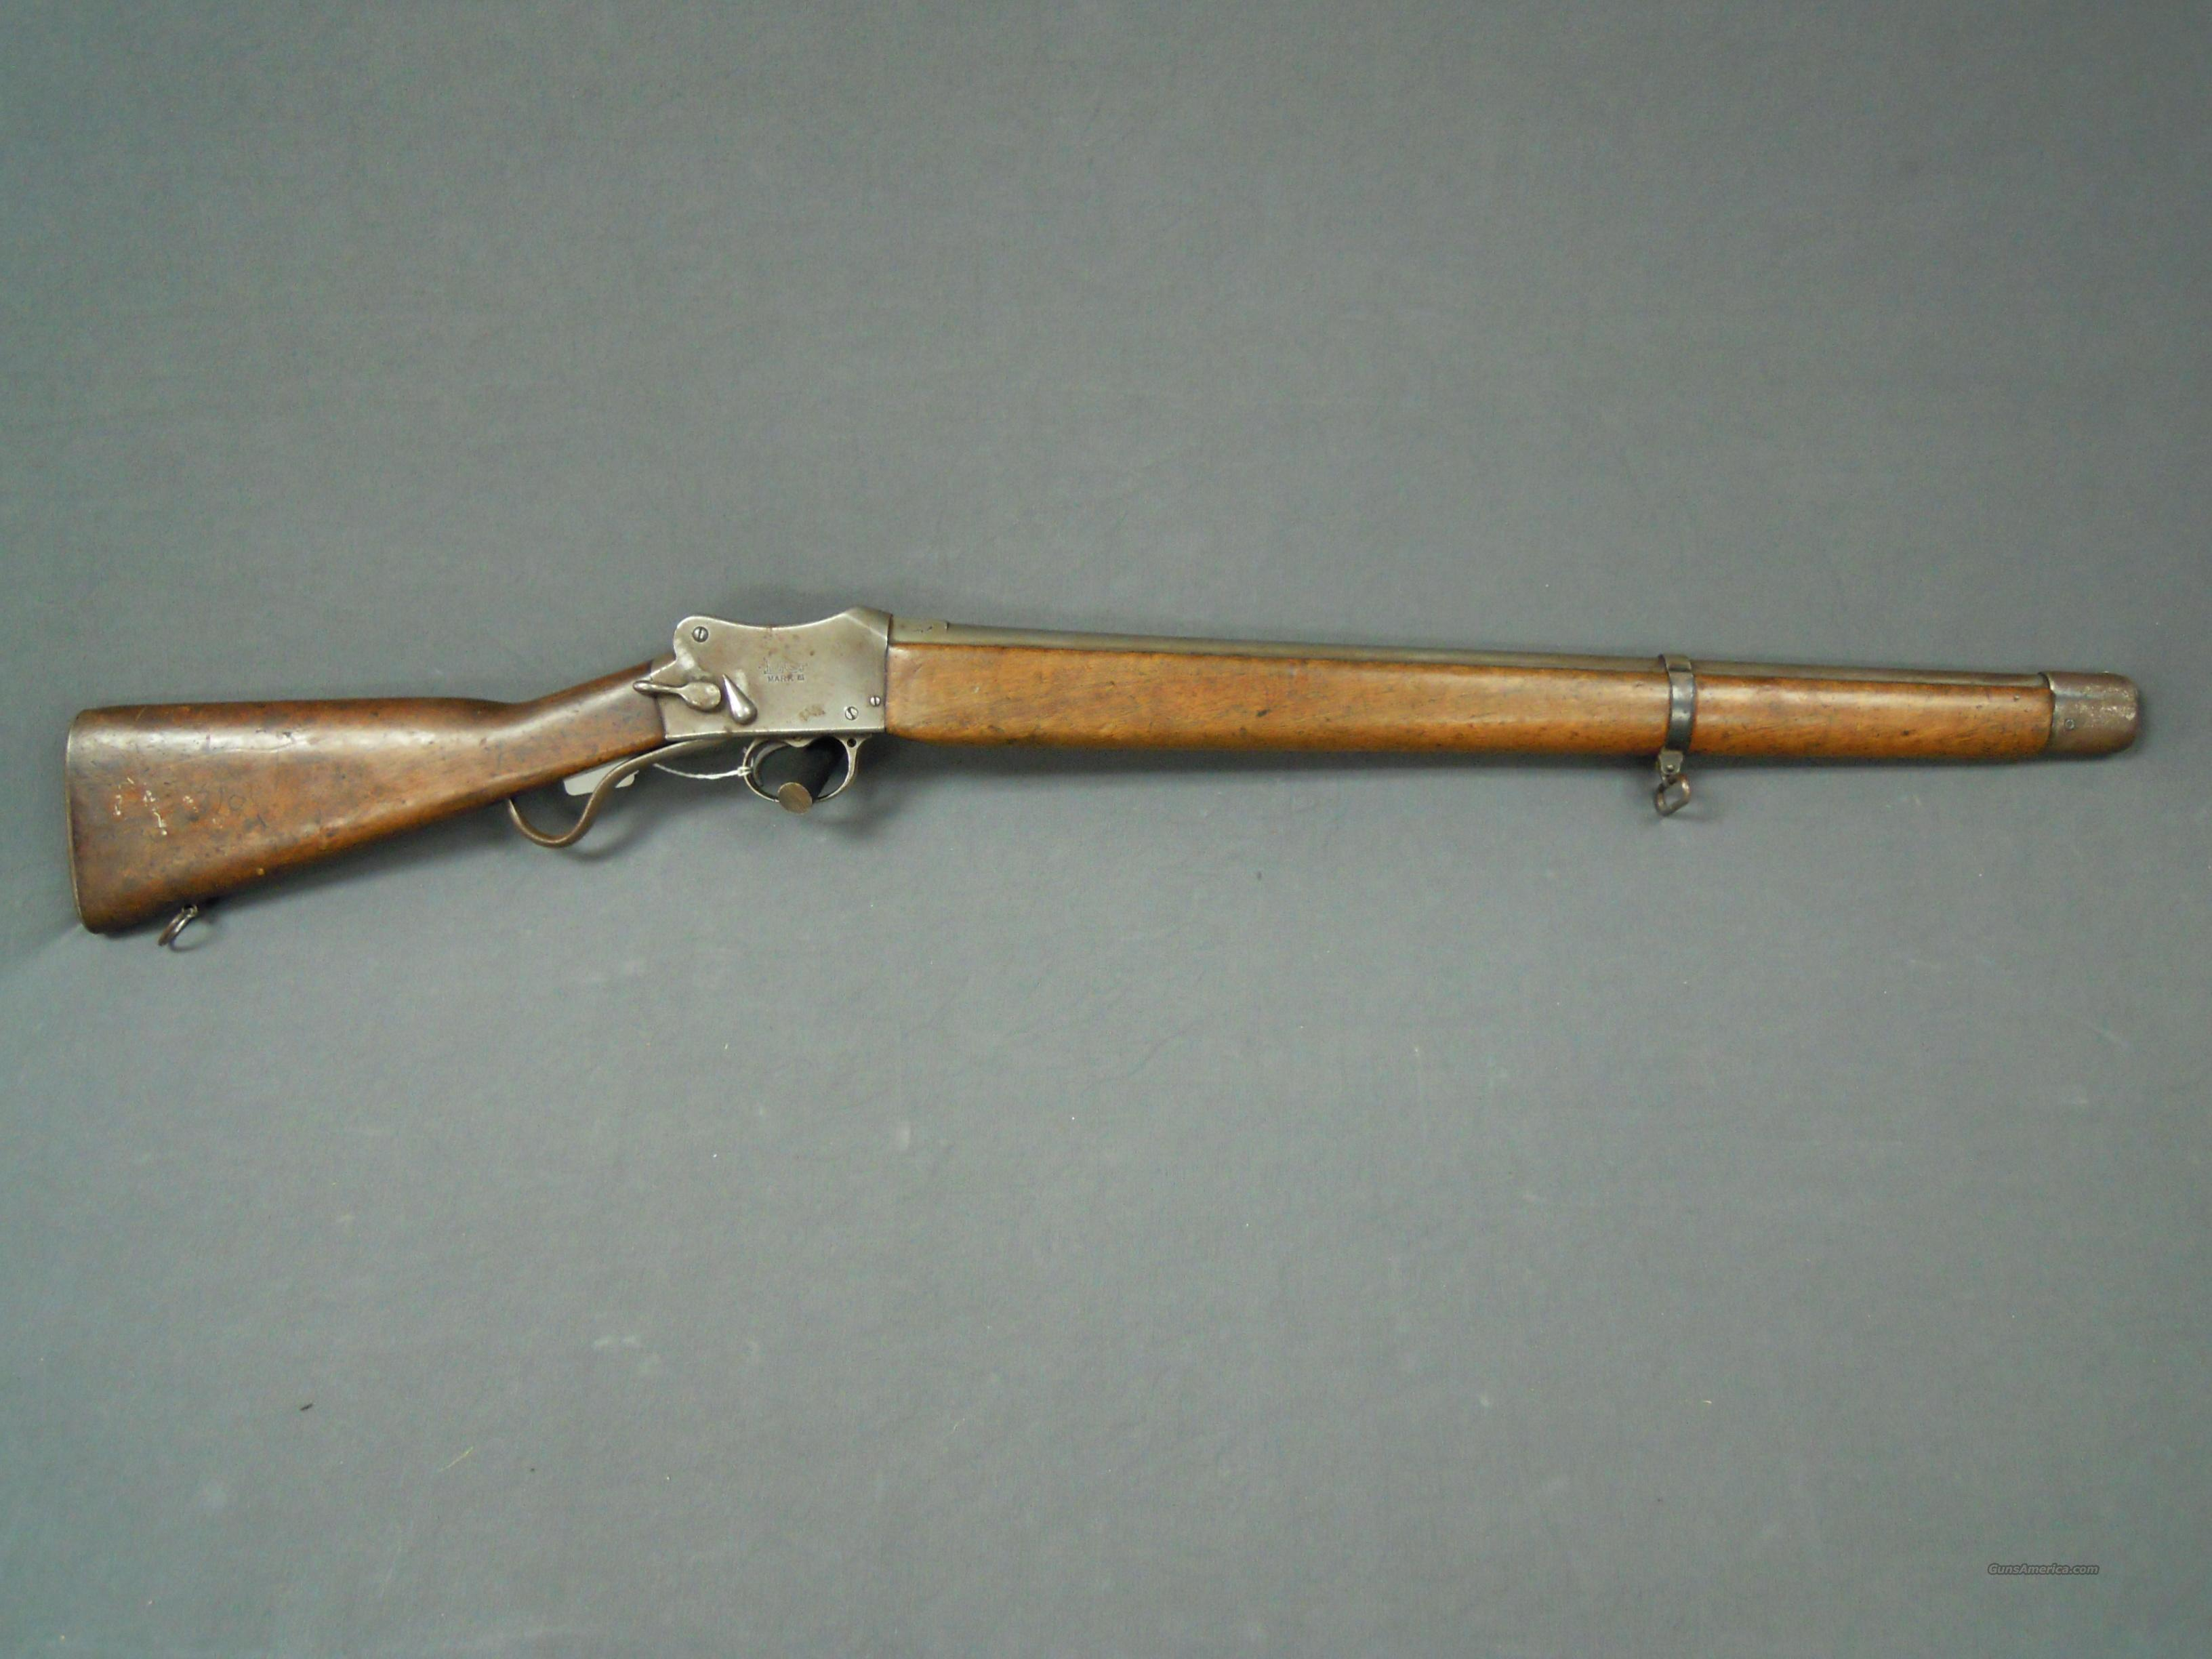 Martini 14 1/2 gauge shotgun